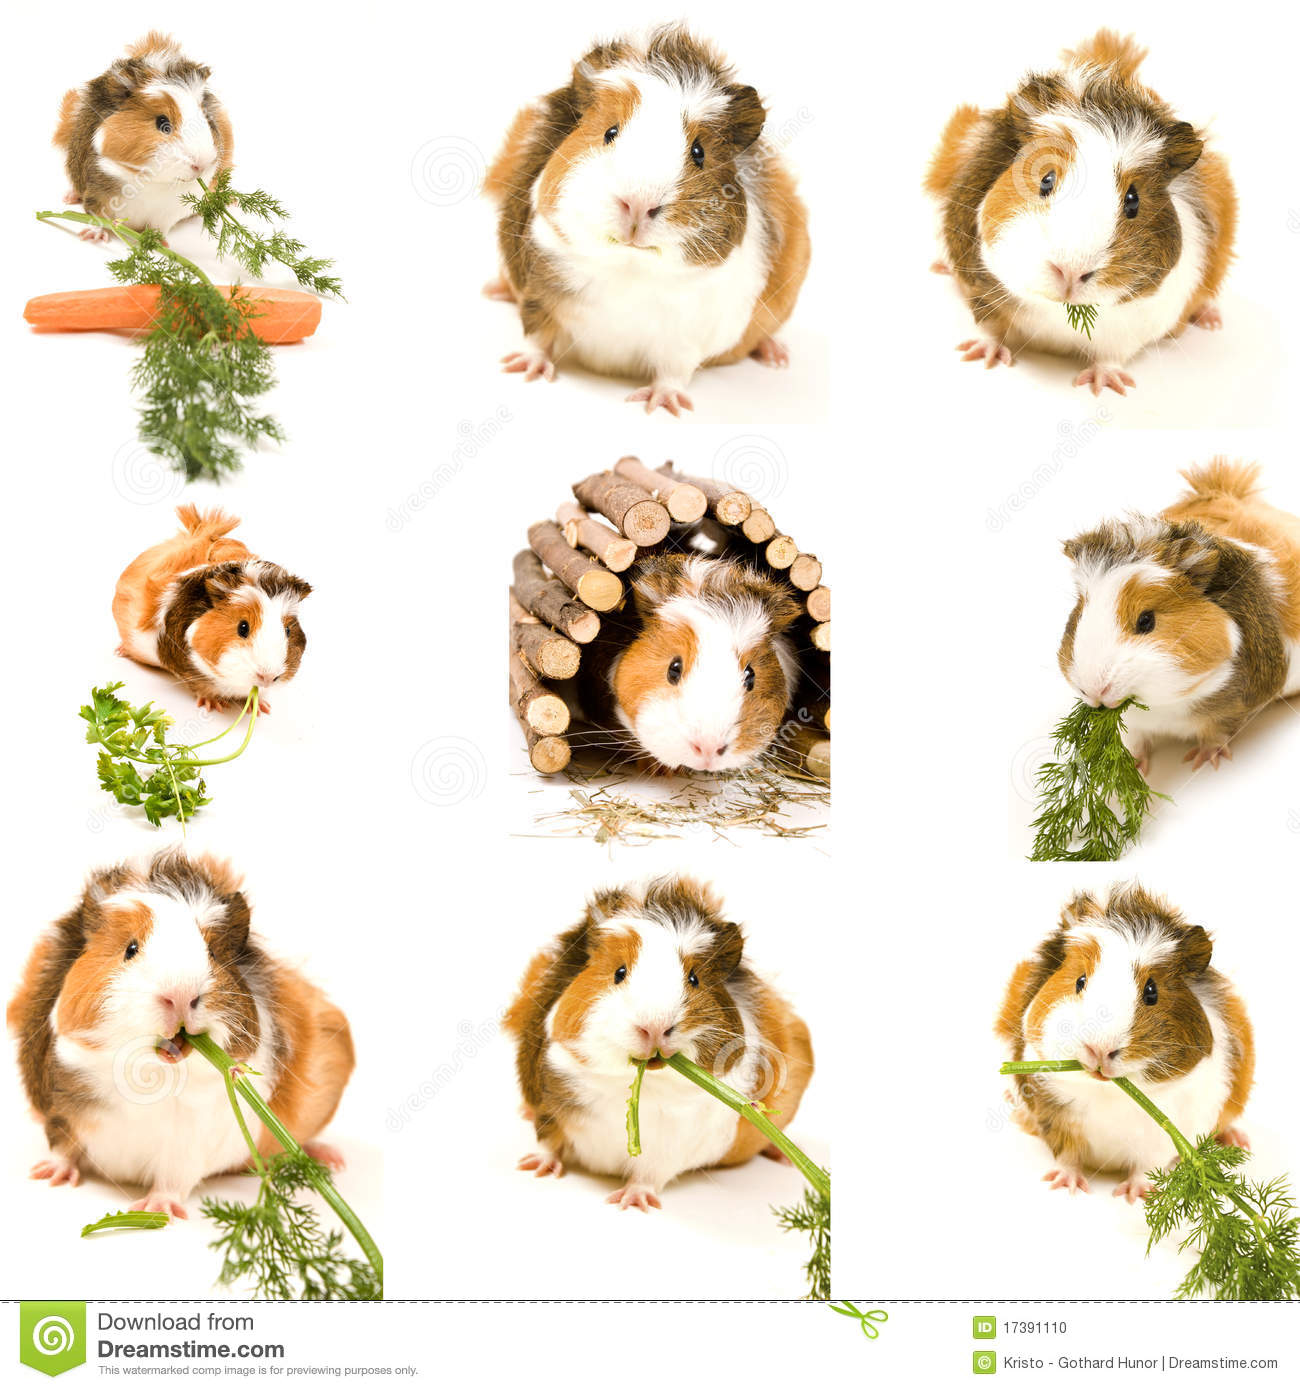 Little Guinea Pig Stock Photo. Image Of Carrot, Nose